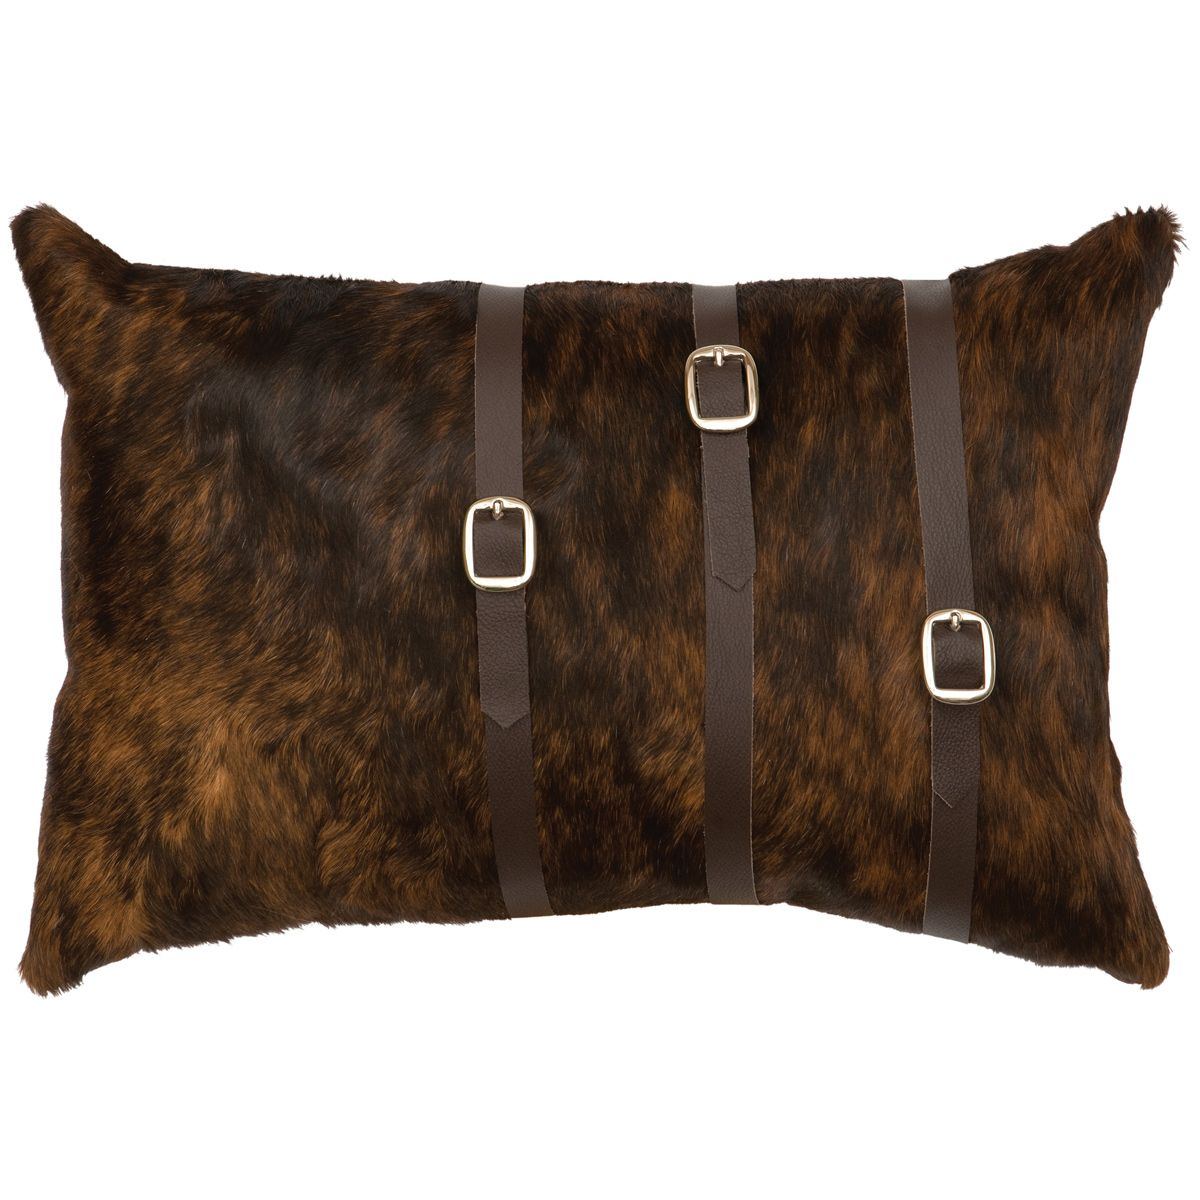 Buckled Dark Brindle Hair on Hide Pillow